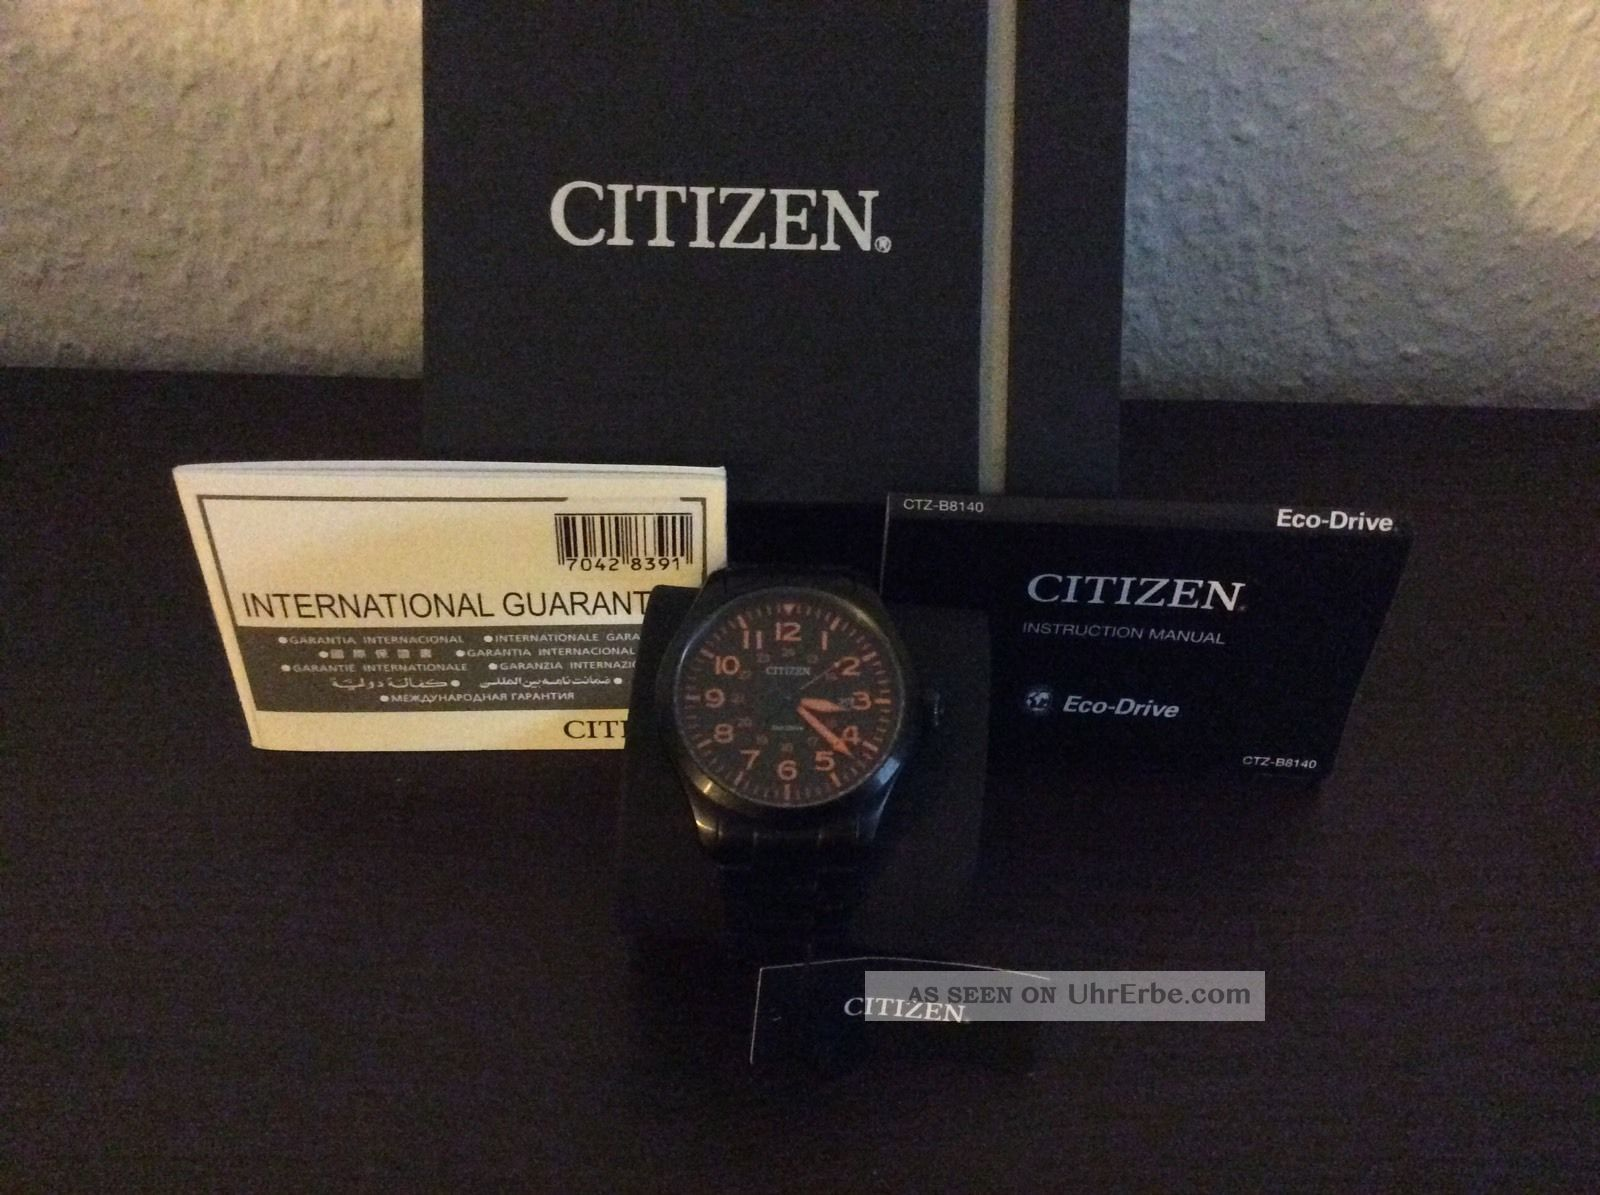 citizen eco-drive b8140 инструкция